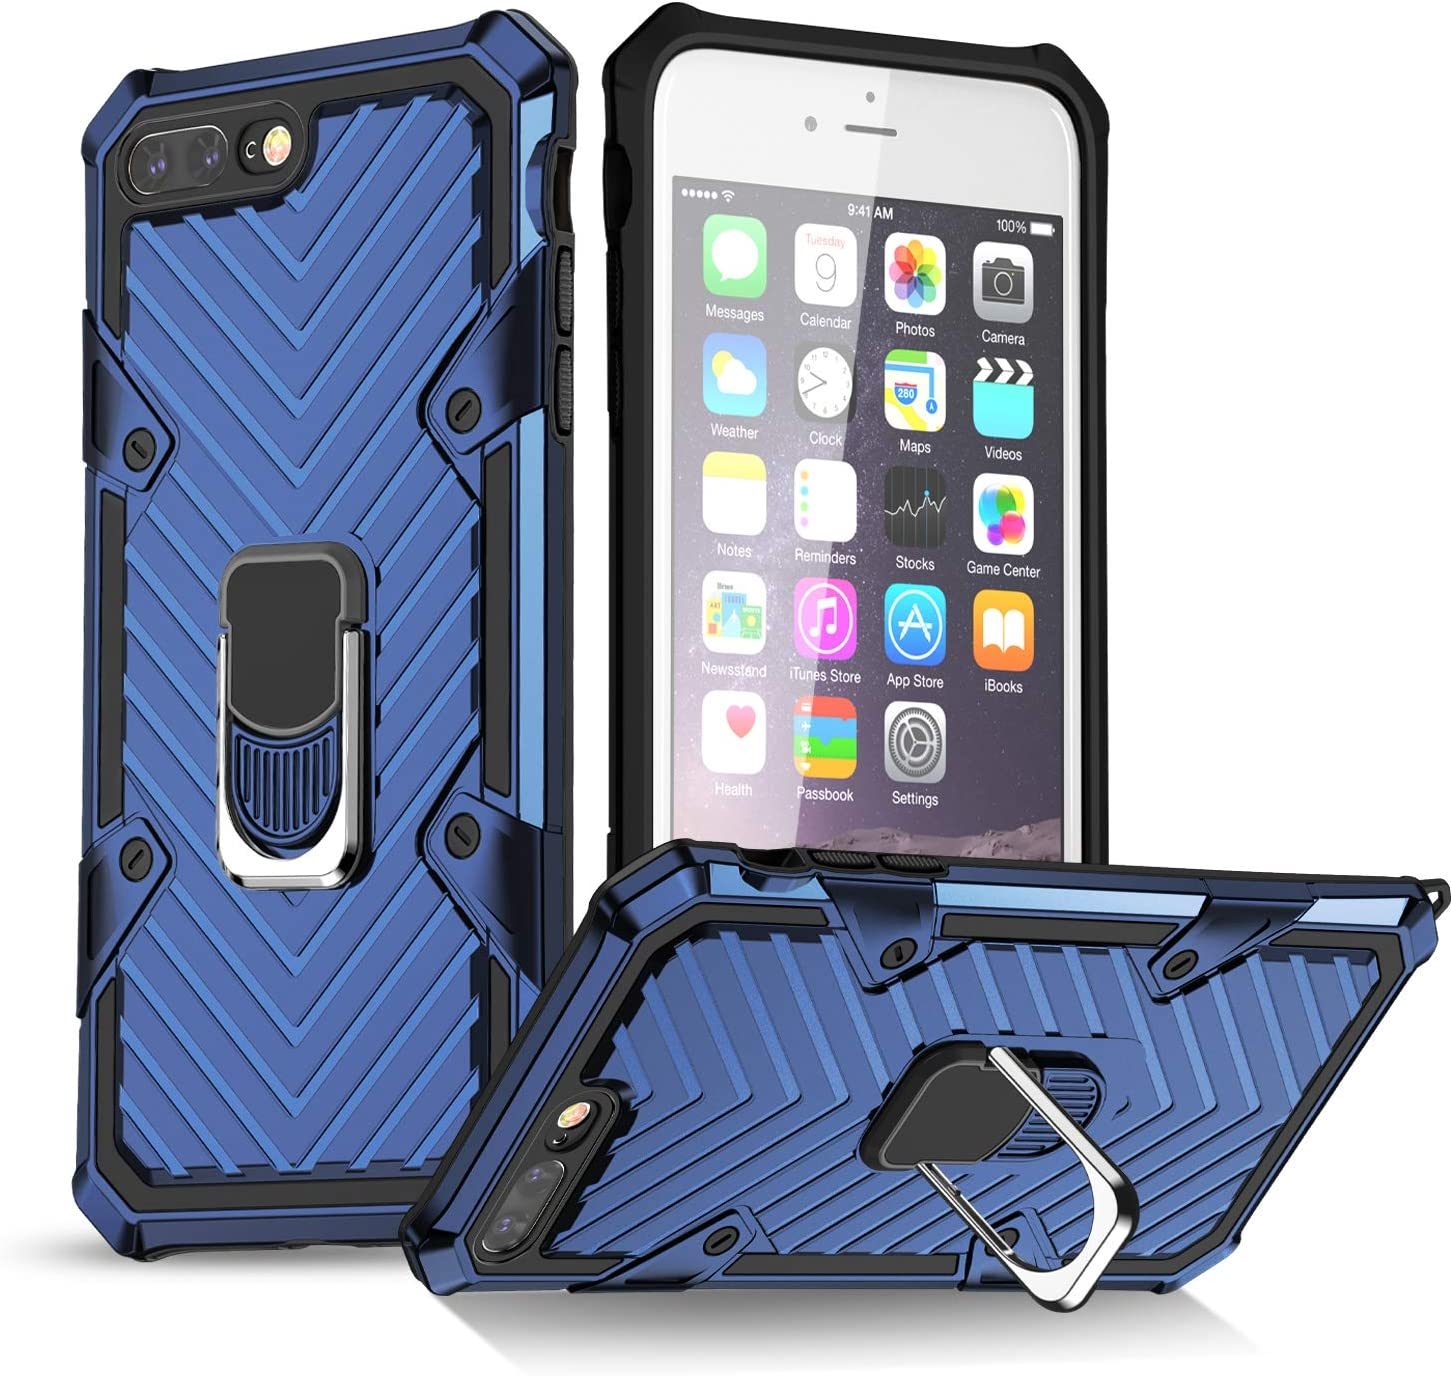 iPhone 7 Plus Case | iPhone 8 Plus Case | Kickstand | [ Military Grade ] 15ft. SGS Drop Tested Protective Case | Compatible for Apple iPhone 8 Plus/iPhone 7 Plus-Blue (iPhone 7/8 Plus)